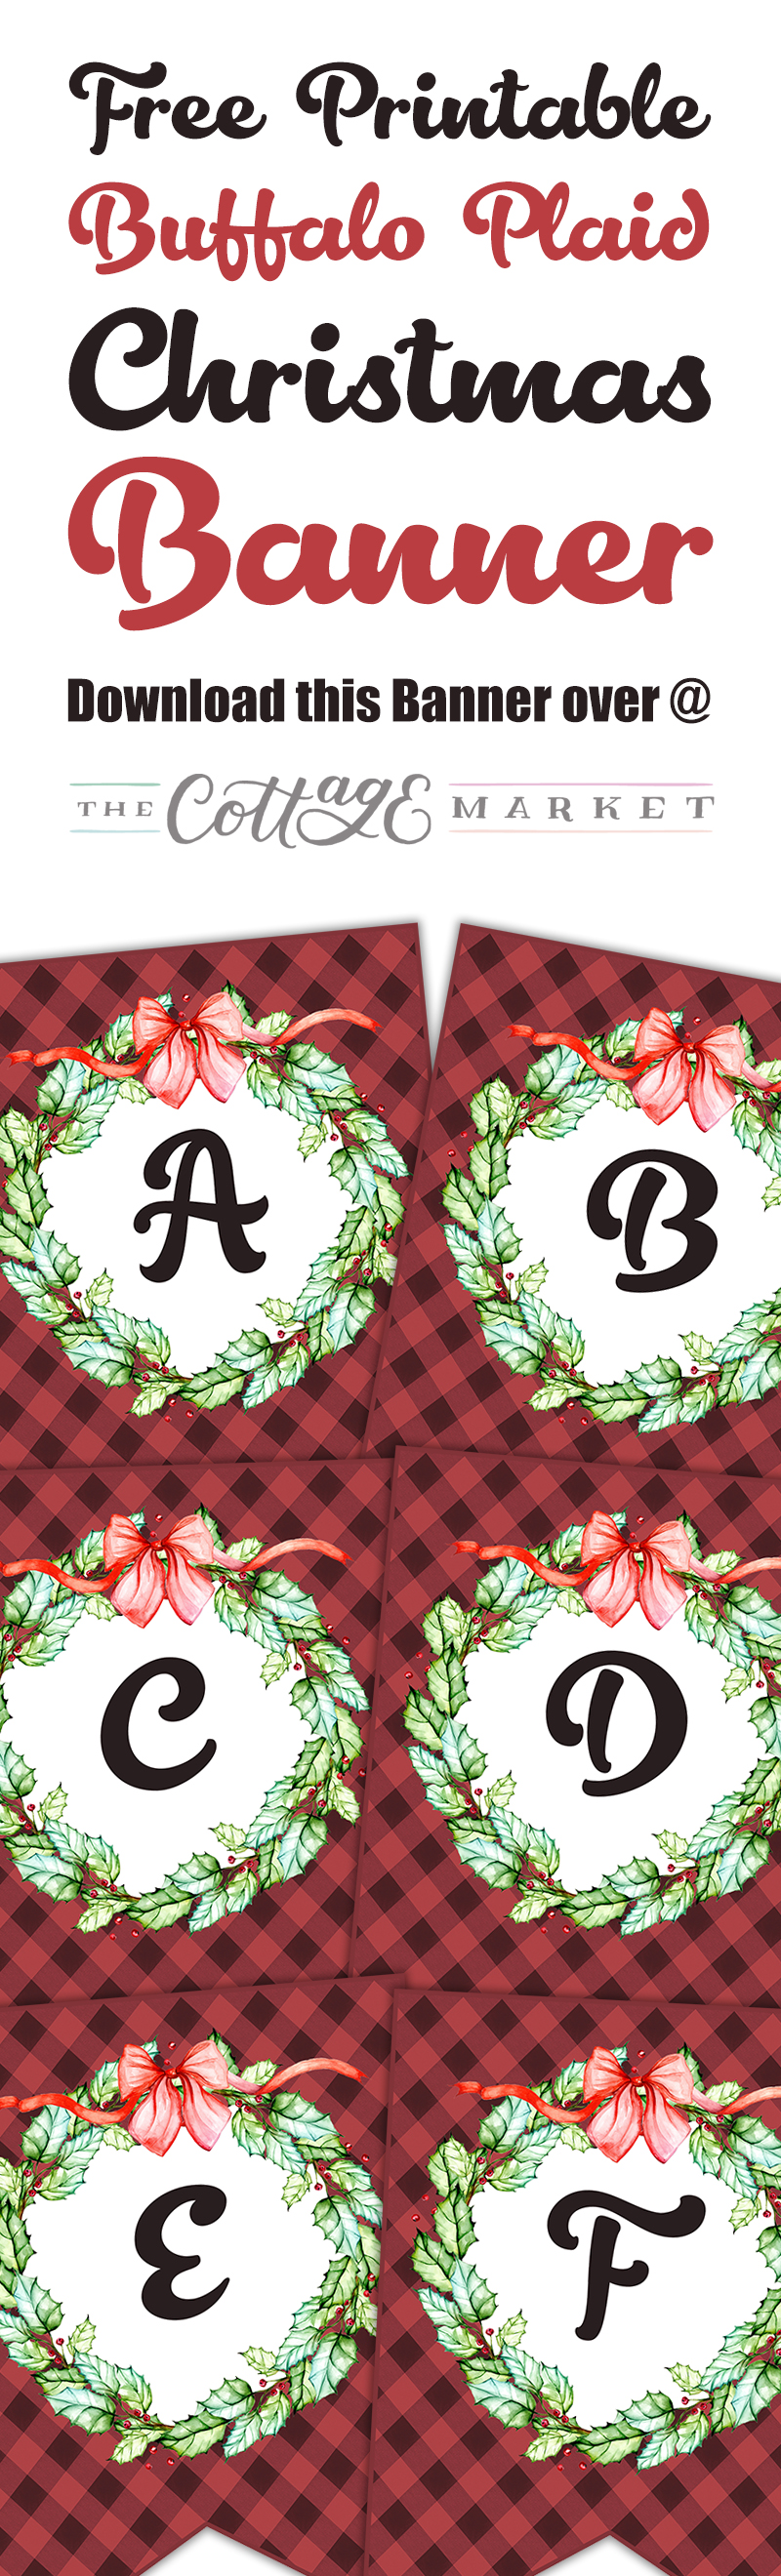 This Free Printable Buffalo Plaid Christmas Banner is just what you have been looking for this Holiday Season! A Full Alphabet, Punctuation and Numbers to create with!